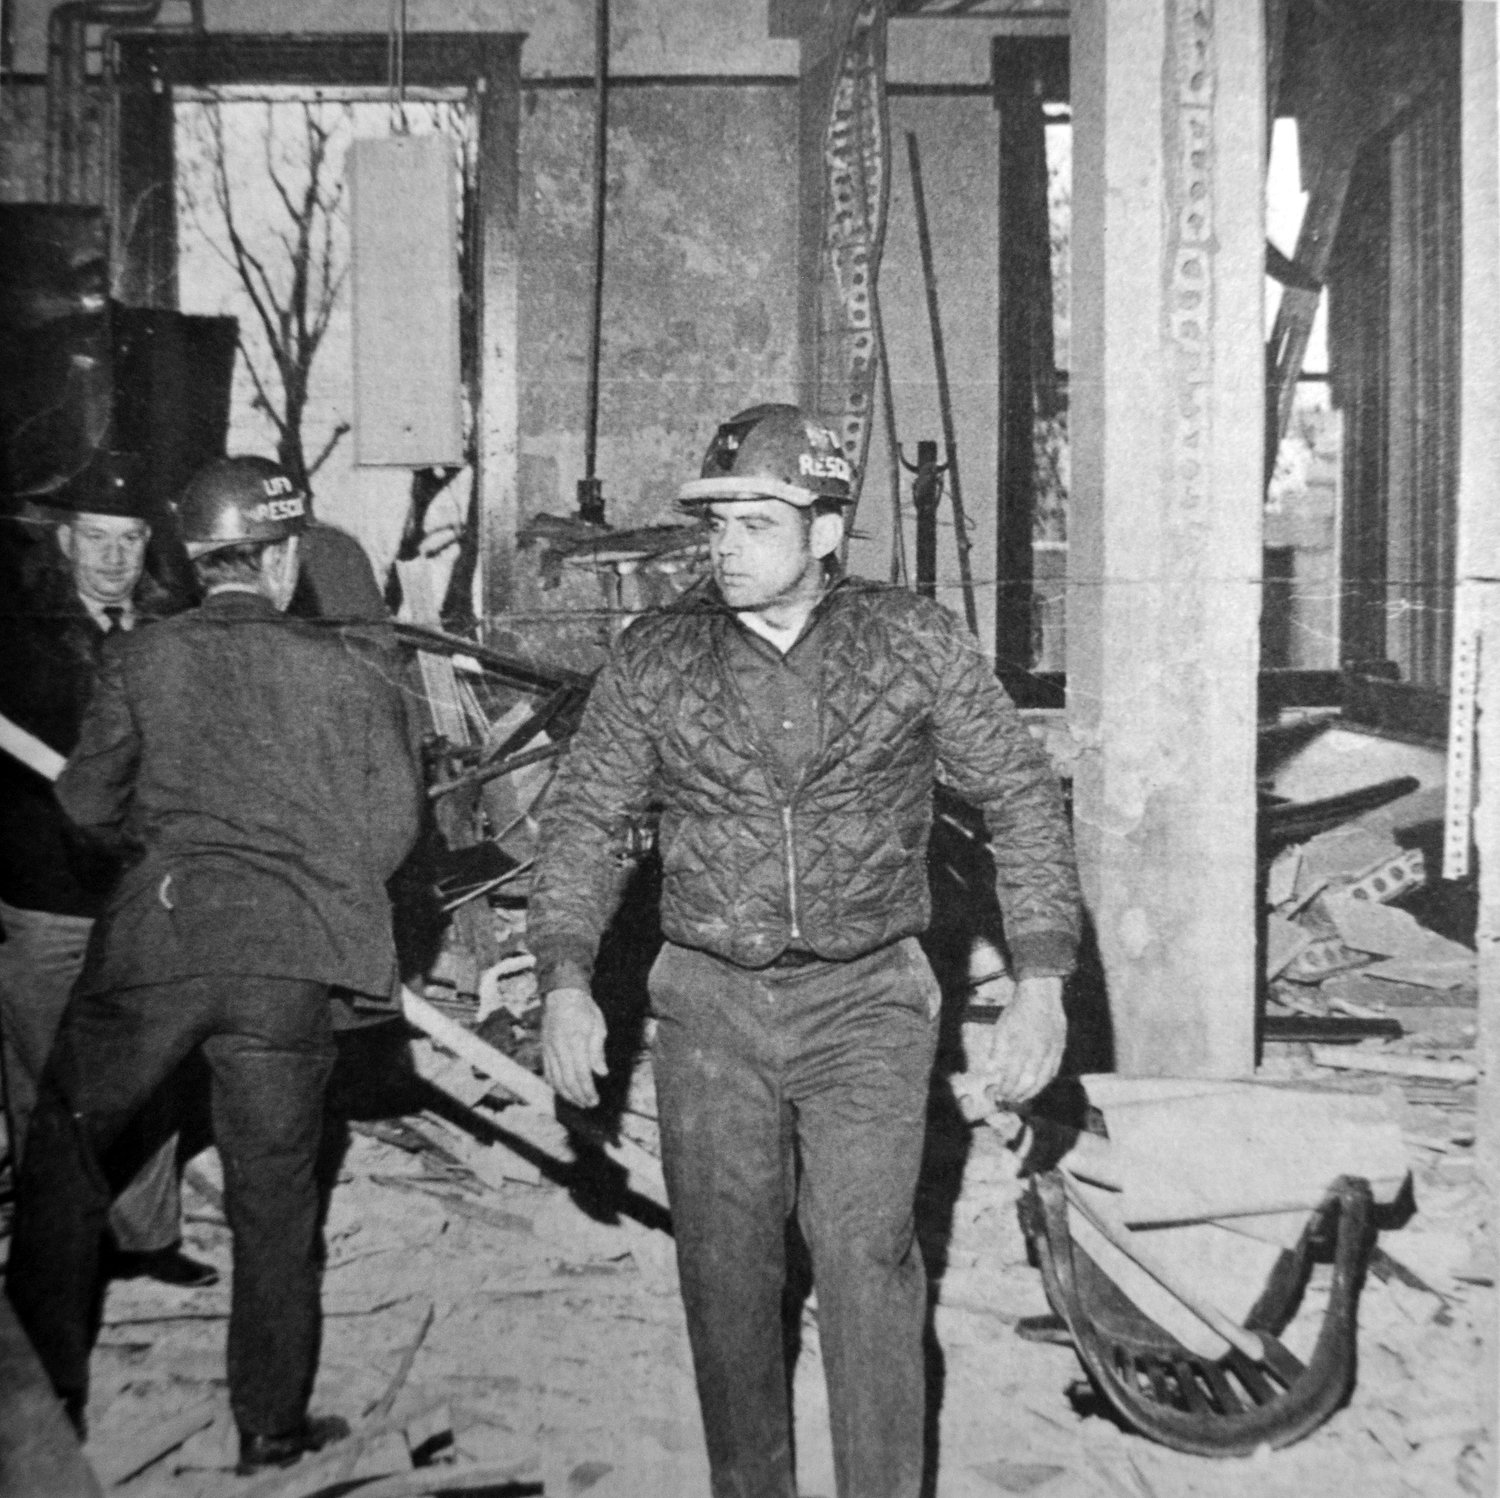 Rescue team members probe through wreckage on the second floor of the Franklin County Courthouse shortly after it was devastated by a plastic explosive around 2 p.m. Thursday, Nov. 13, 1969. The explosion apparently was a diversionary tactic by two armed gunmen who robbed a nearby bank moments afterward.